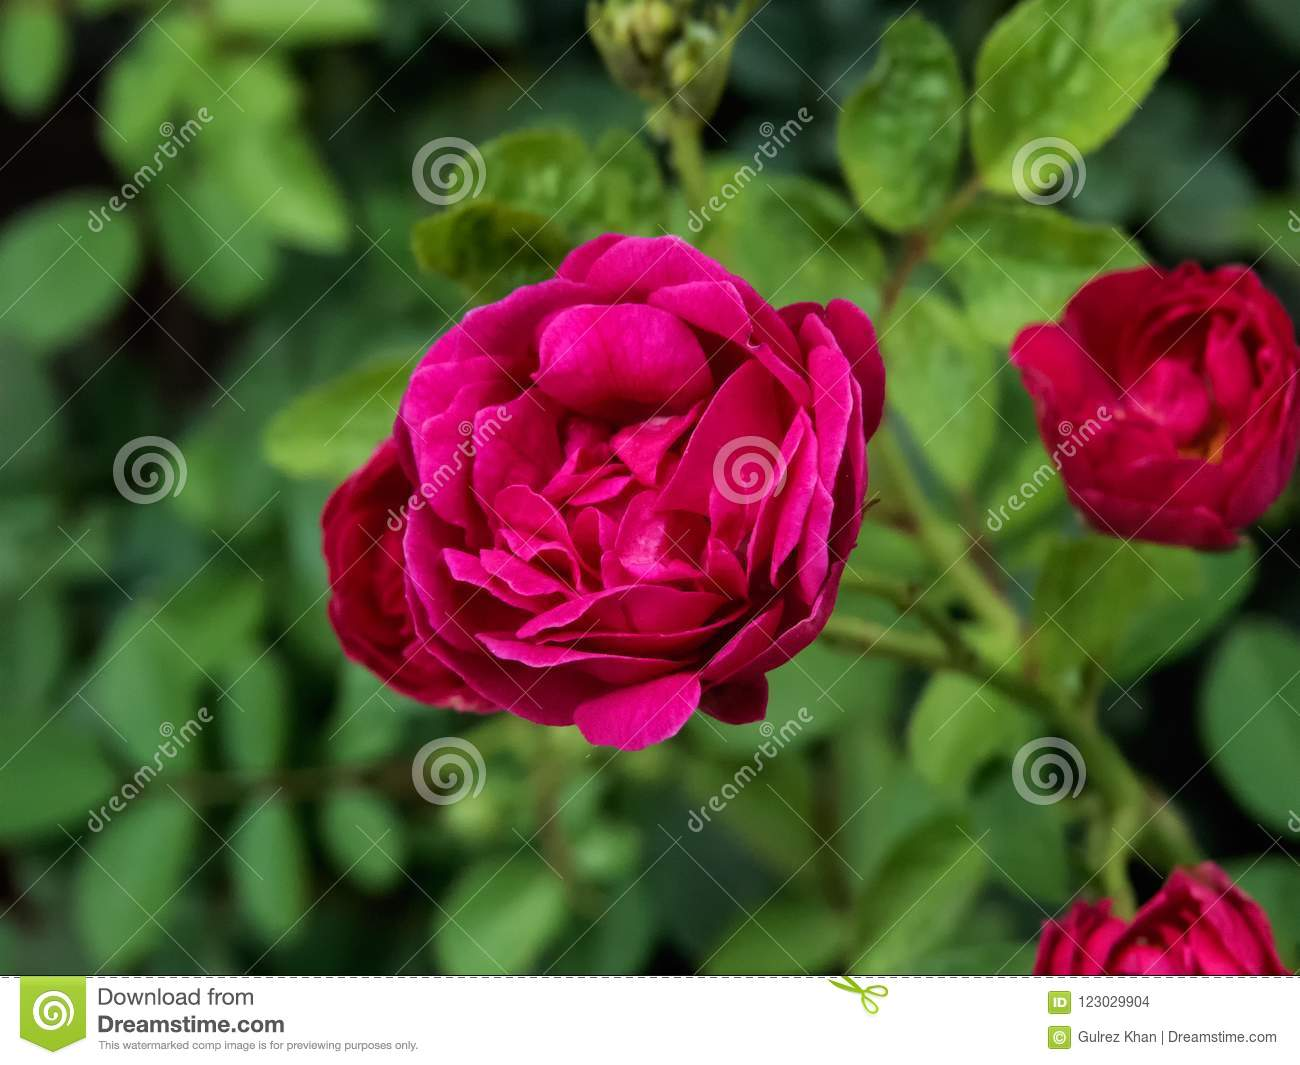 Red rose on plant, with green leaves-India